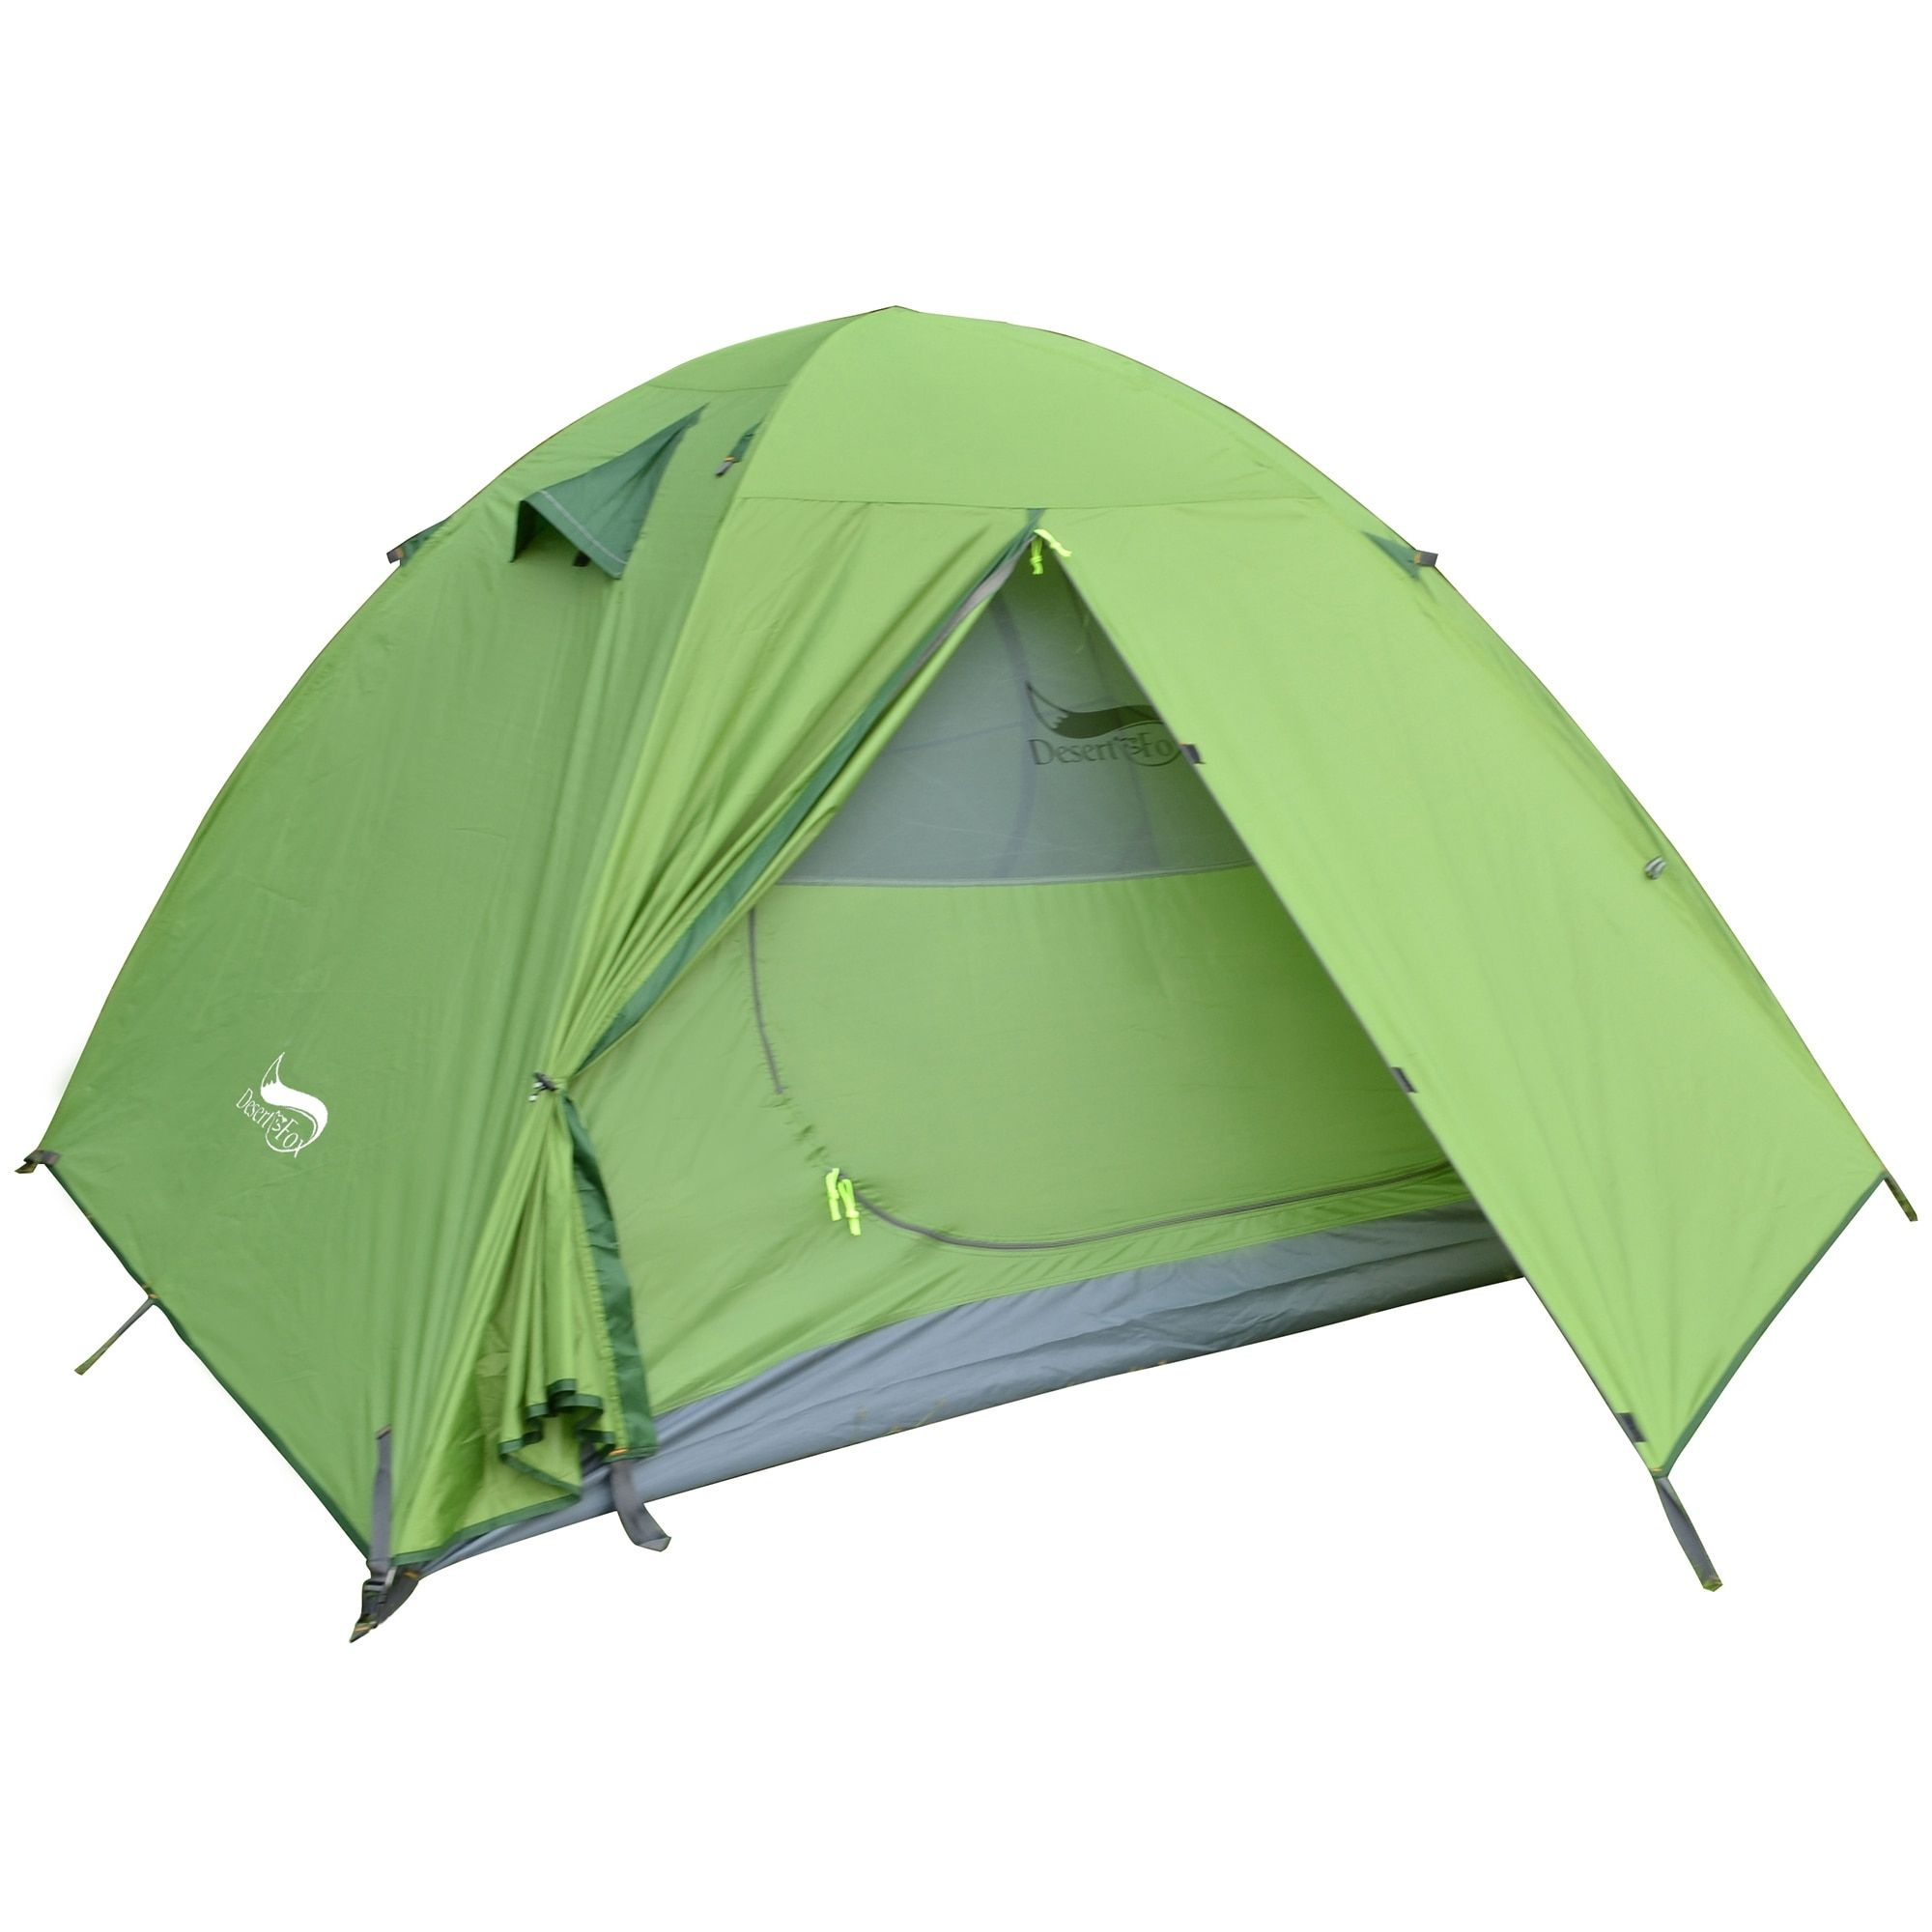 Camping Tent 1 and 2 Person Backpacking Tent Double Layer Portable Outdoor 99